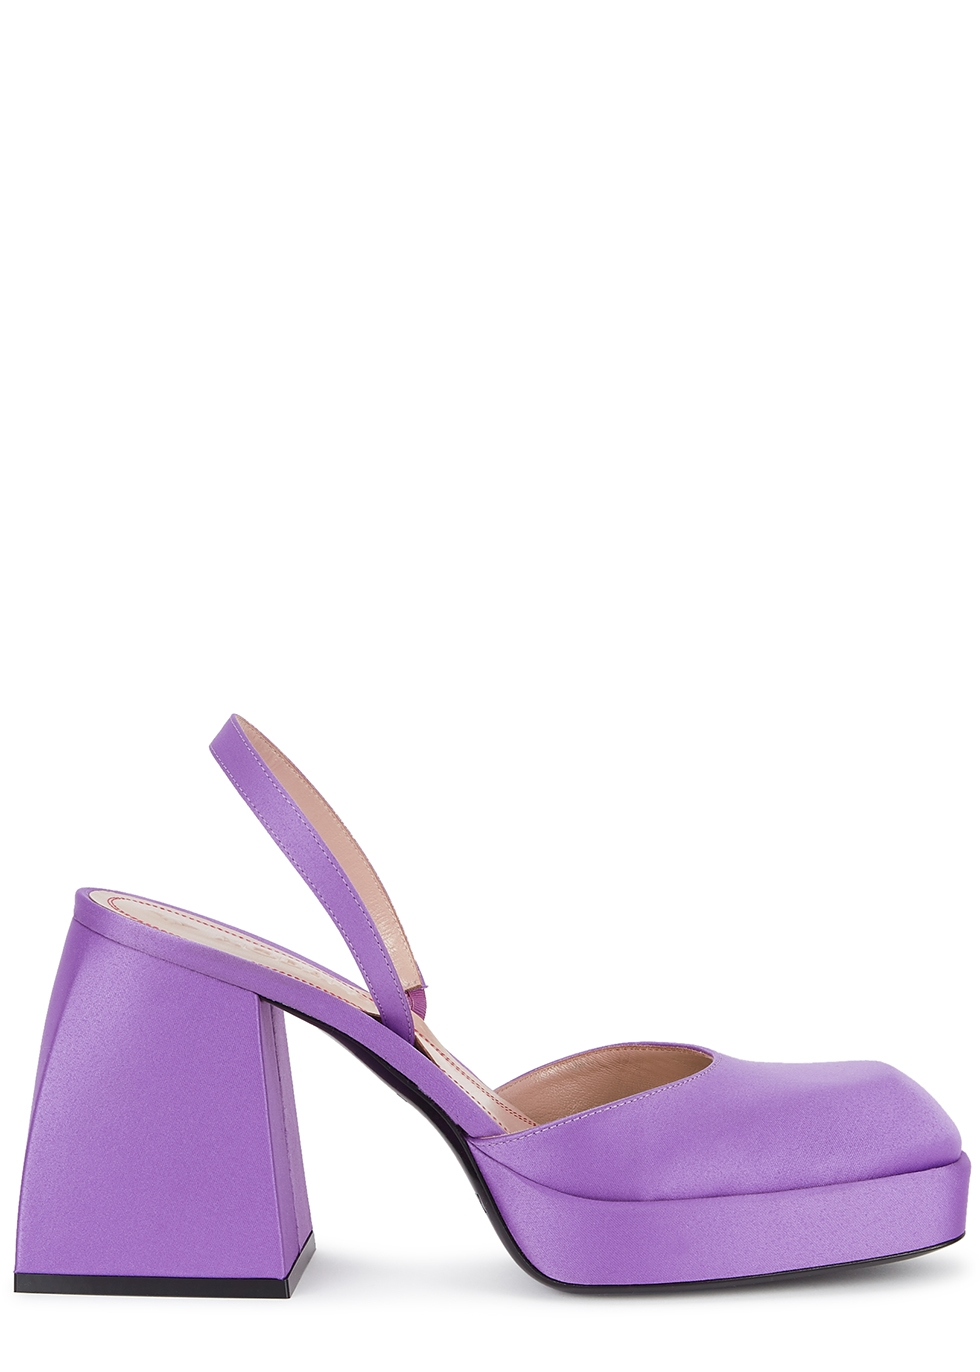 Bulla Jones 85 purple satin slingback pumps